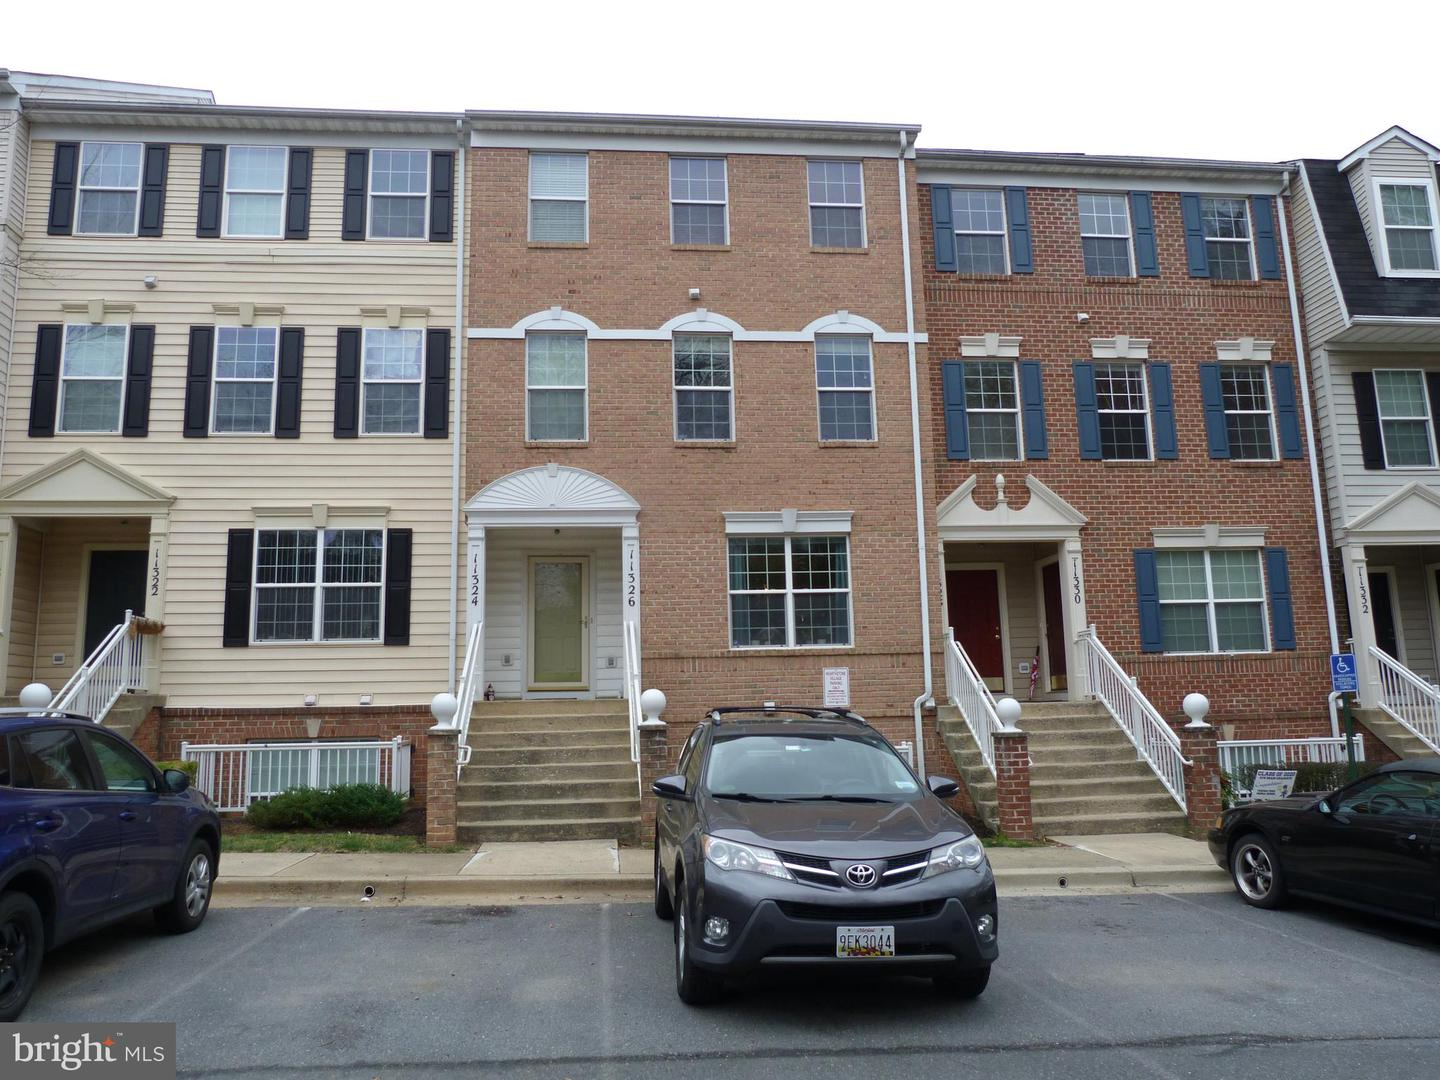 11324 KING GEORGE DR #8, SILVER SPRING, Maryland 20902, 3 Bedrooms Bedrooms, ,3 BathroomsBathrooms,Common Interest,For Sale,11324 KING GEORGE DR #8,MDMC752118